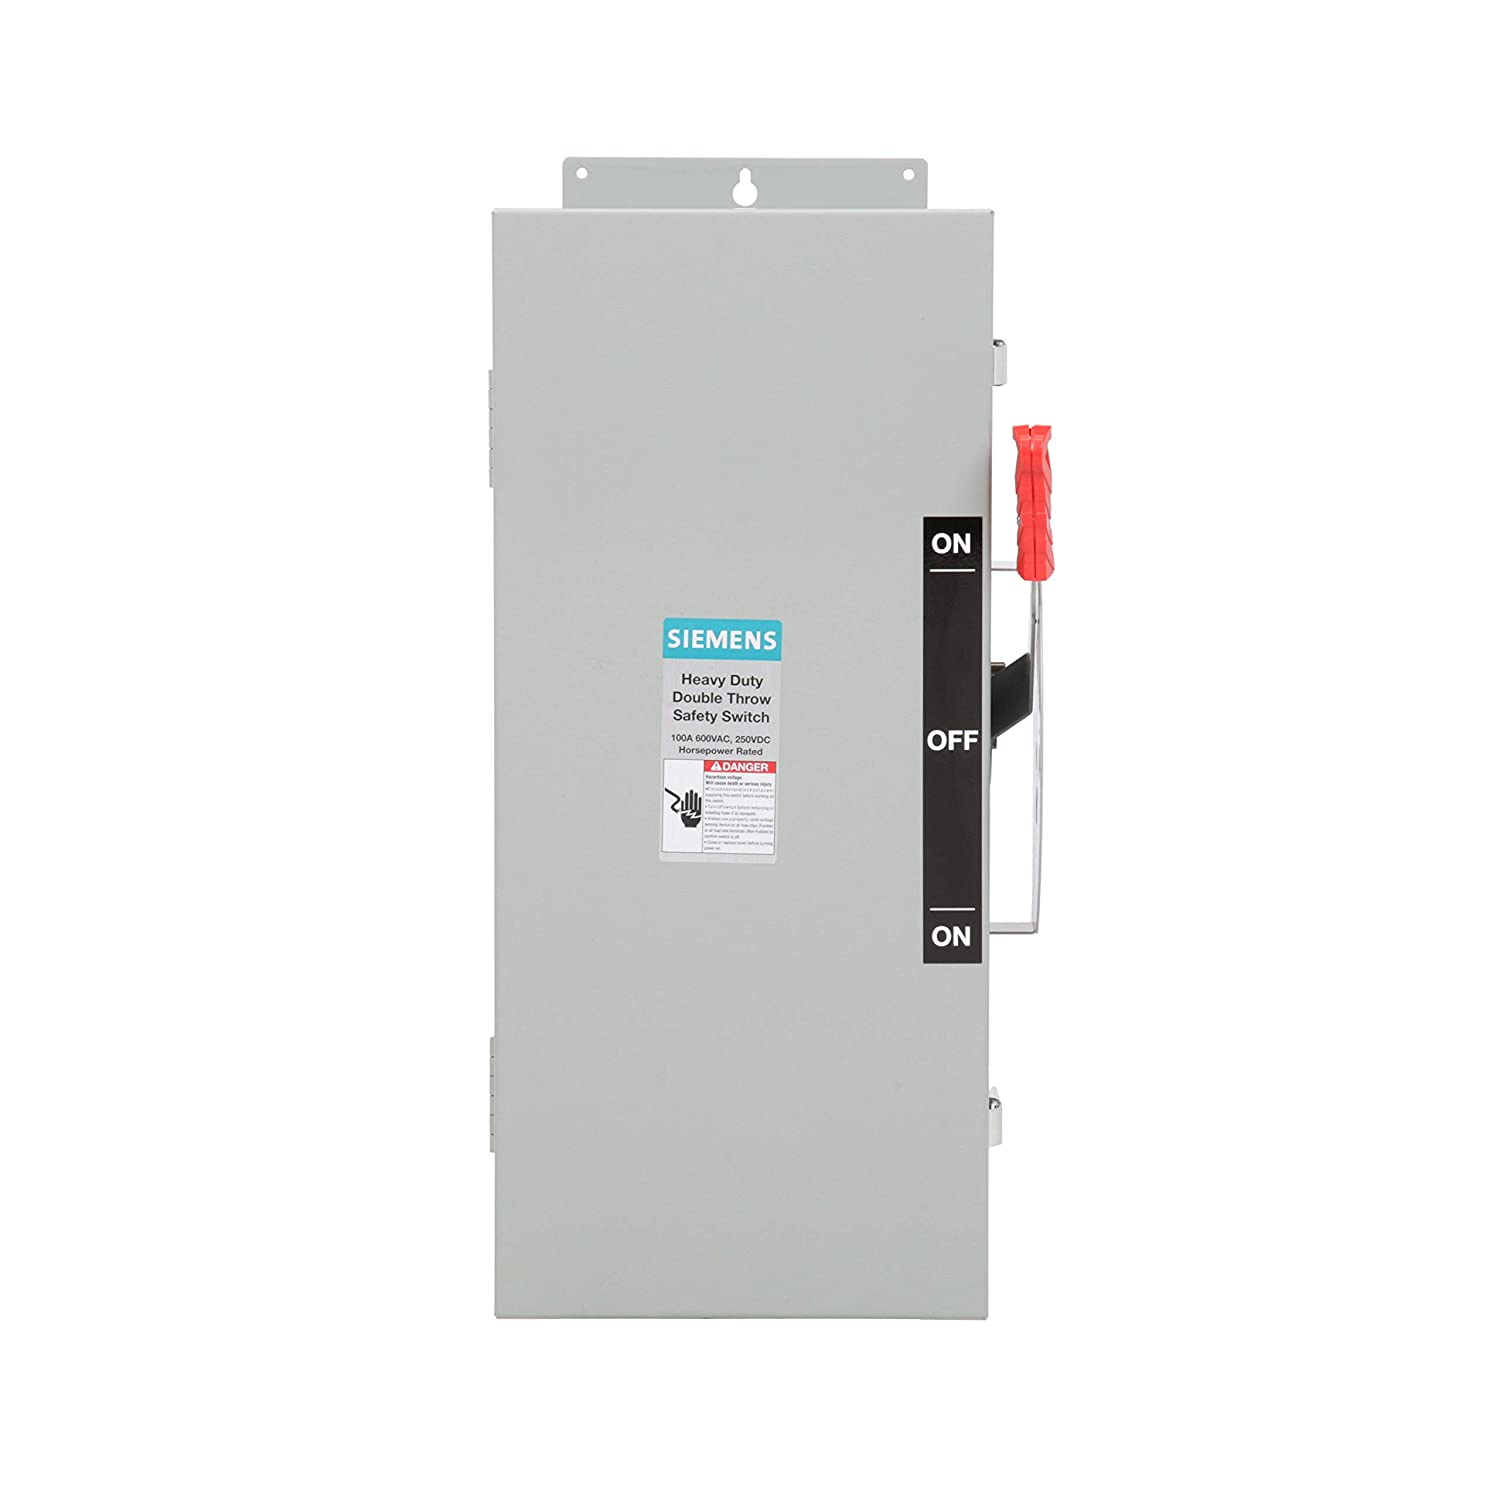 Siemens DTNF363J 100-Amp 3 Pole 600-volt 3 Wire Non-Fused Double Throw Safety Switches Siemens HI